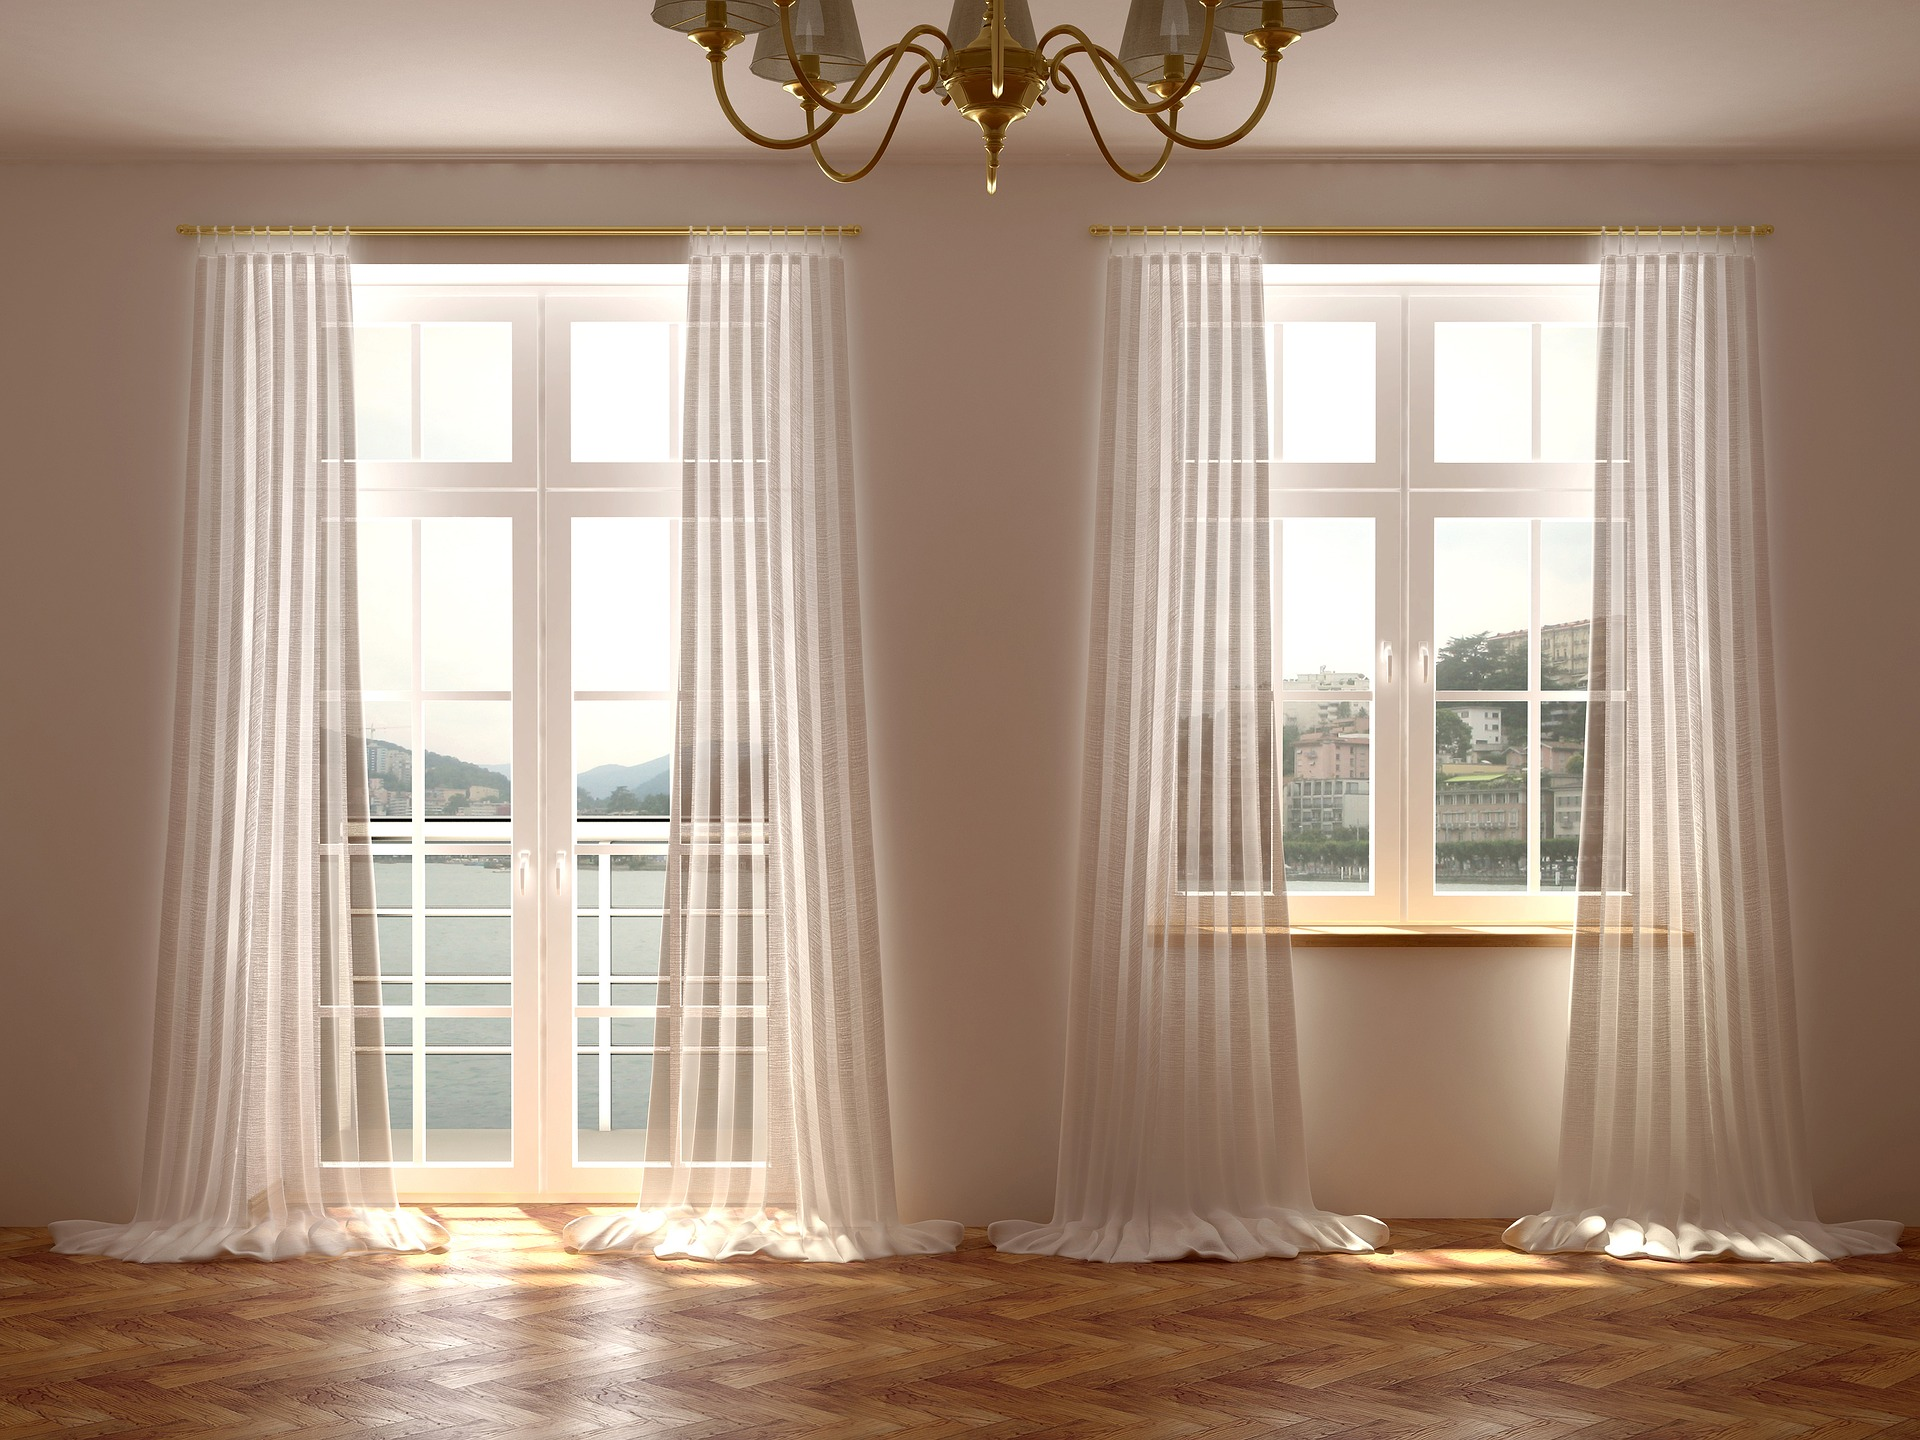 Why natural light is one of the most important things when considering a property